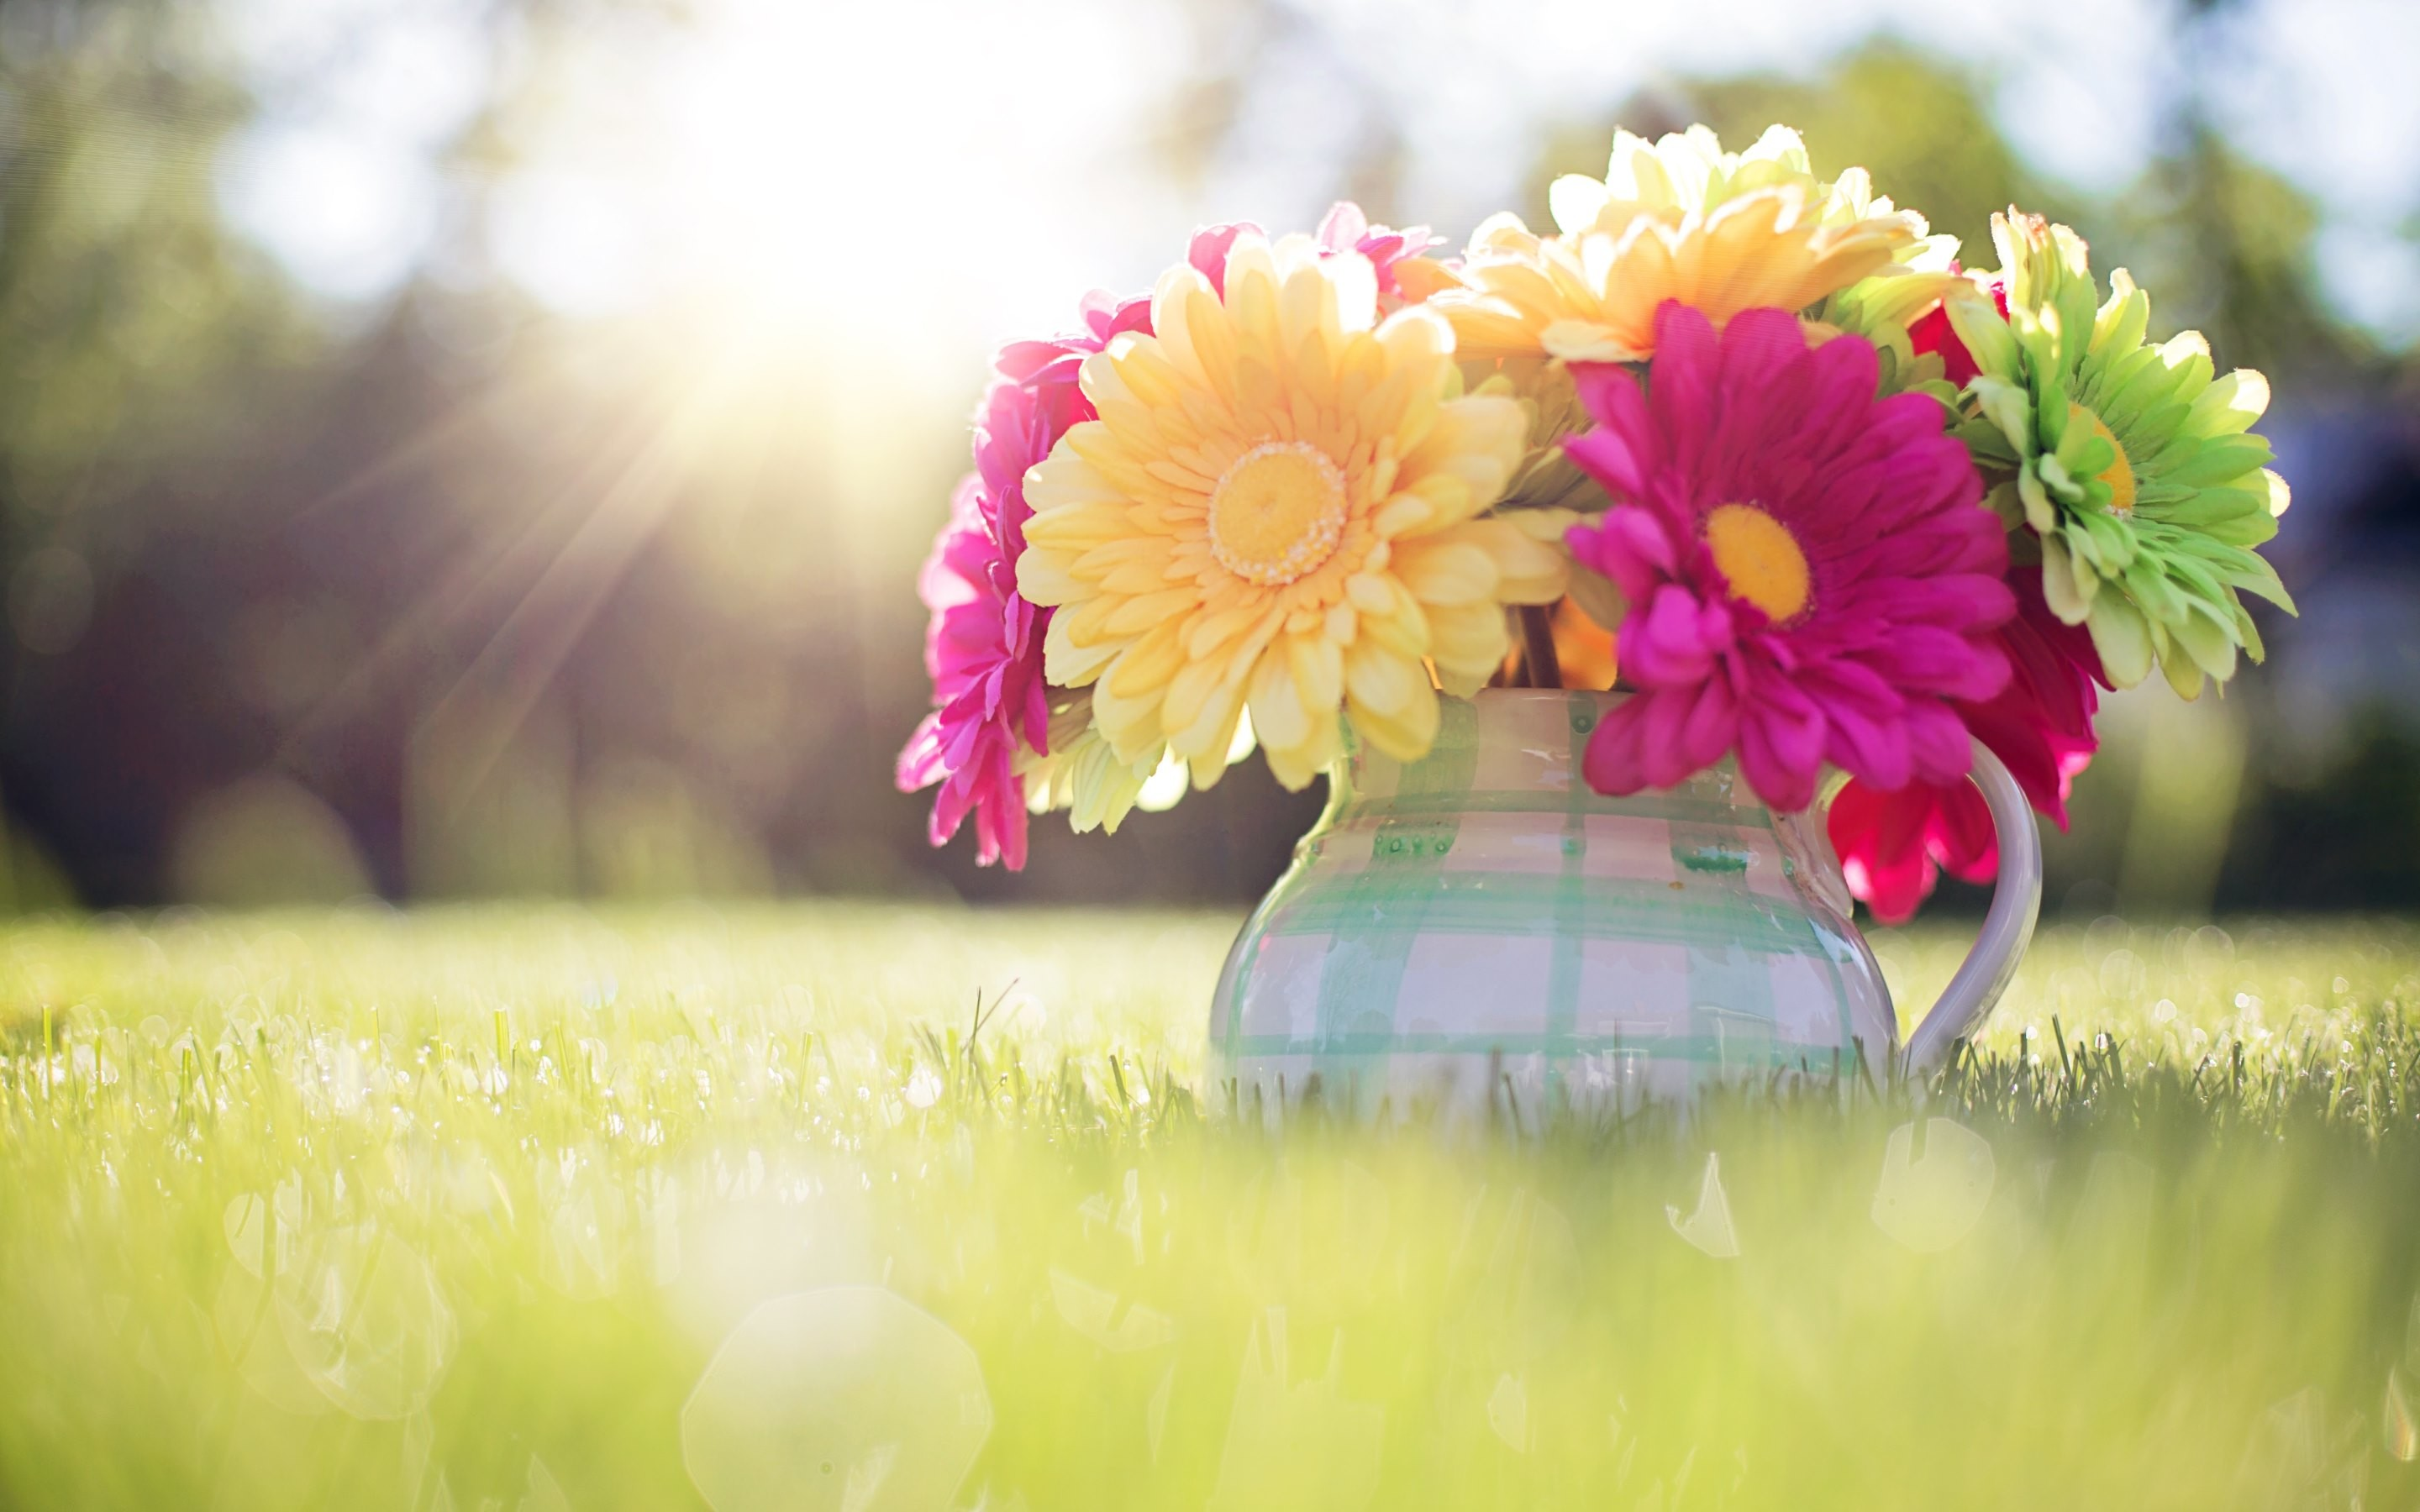 4K HD Wallpaper: Spring · 4 Free Pictures related to Spring to have it in  Phones, Desktop Screens, Blogs.